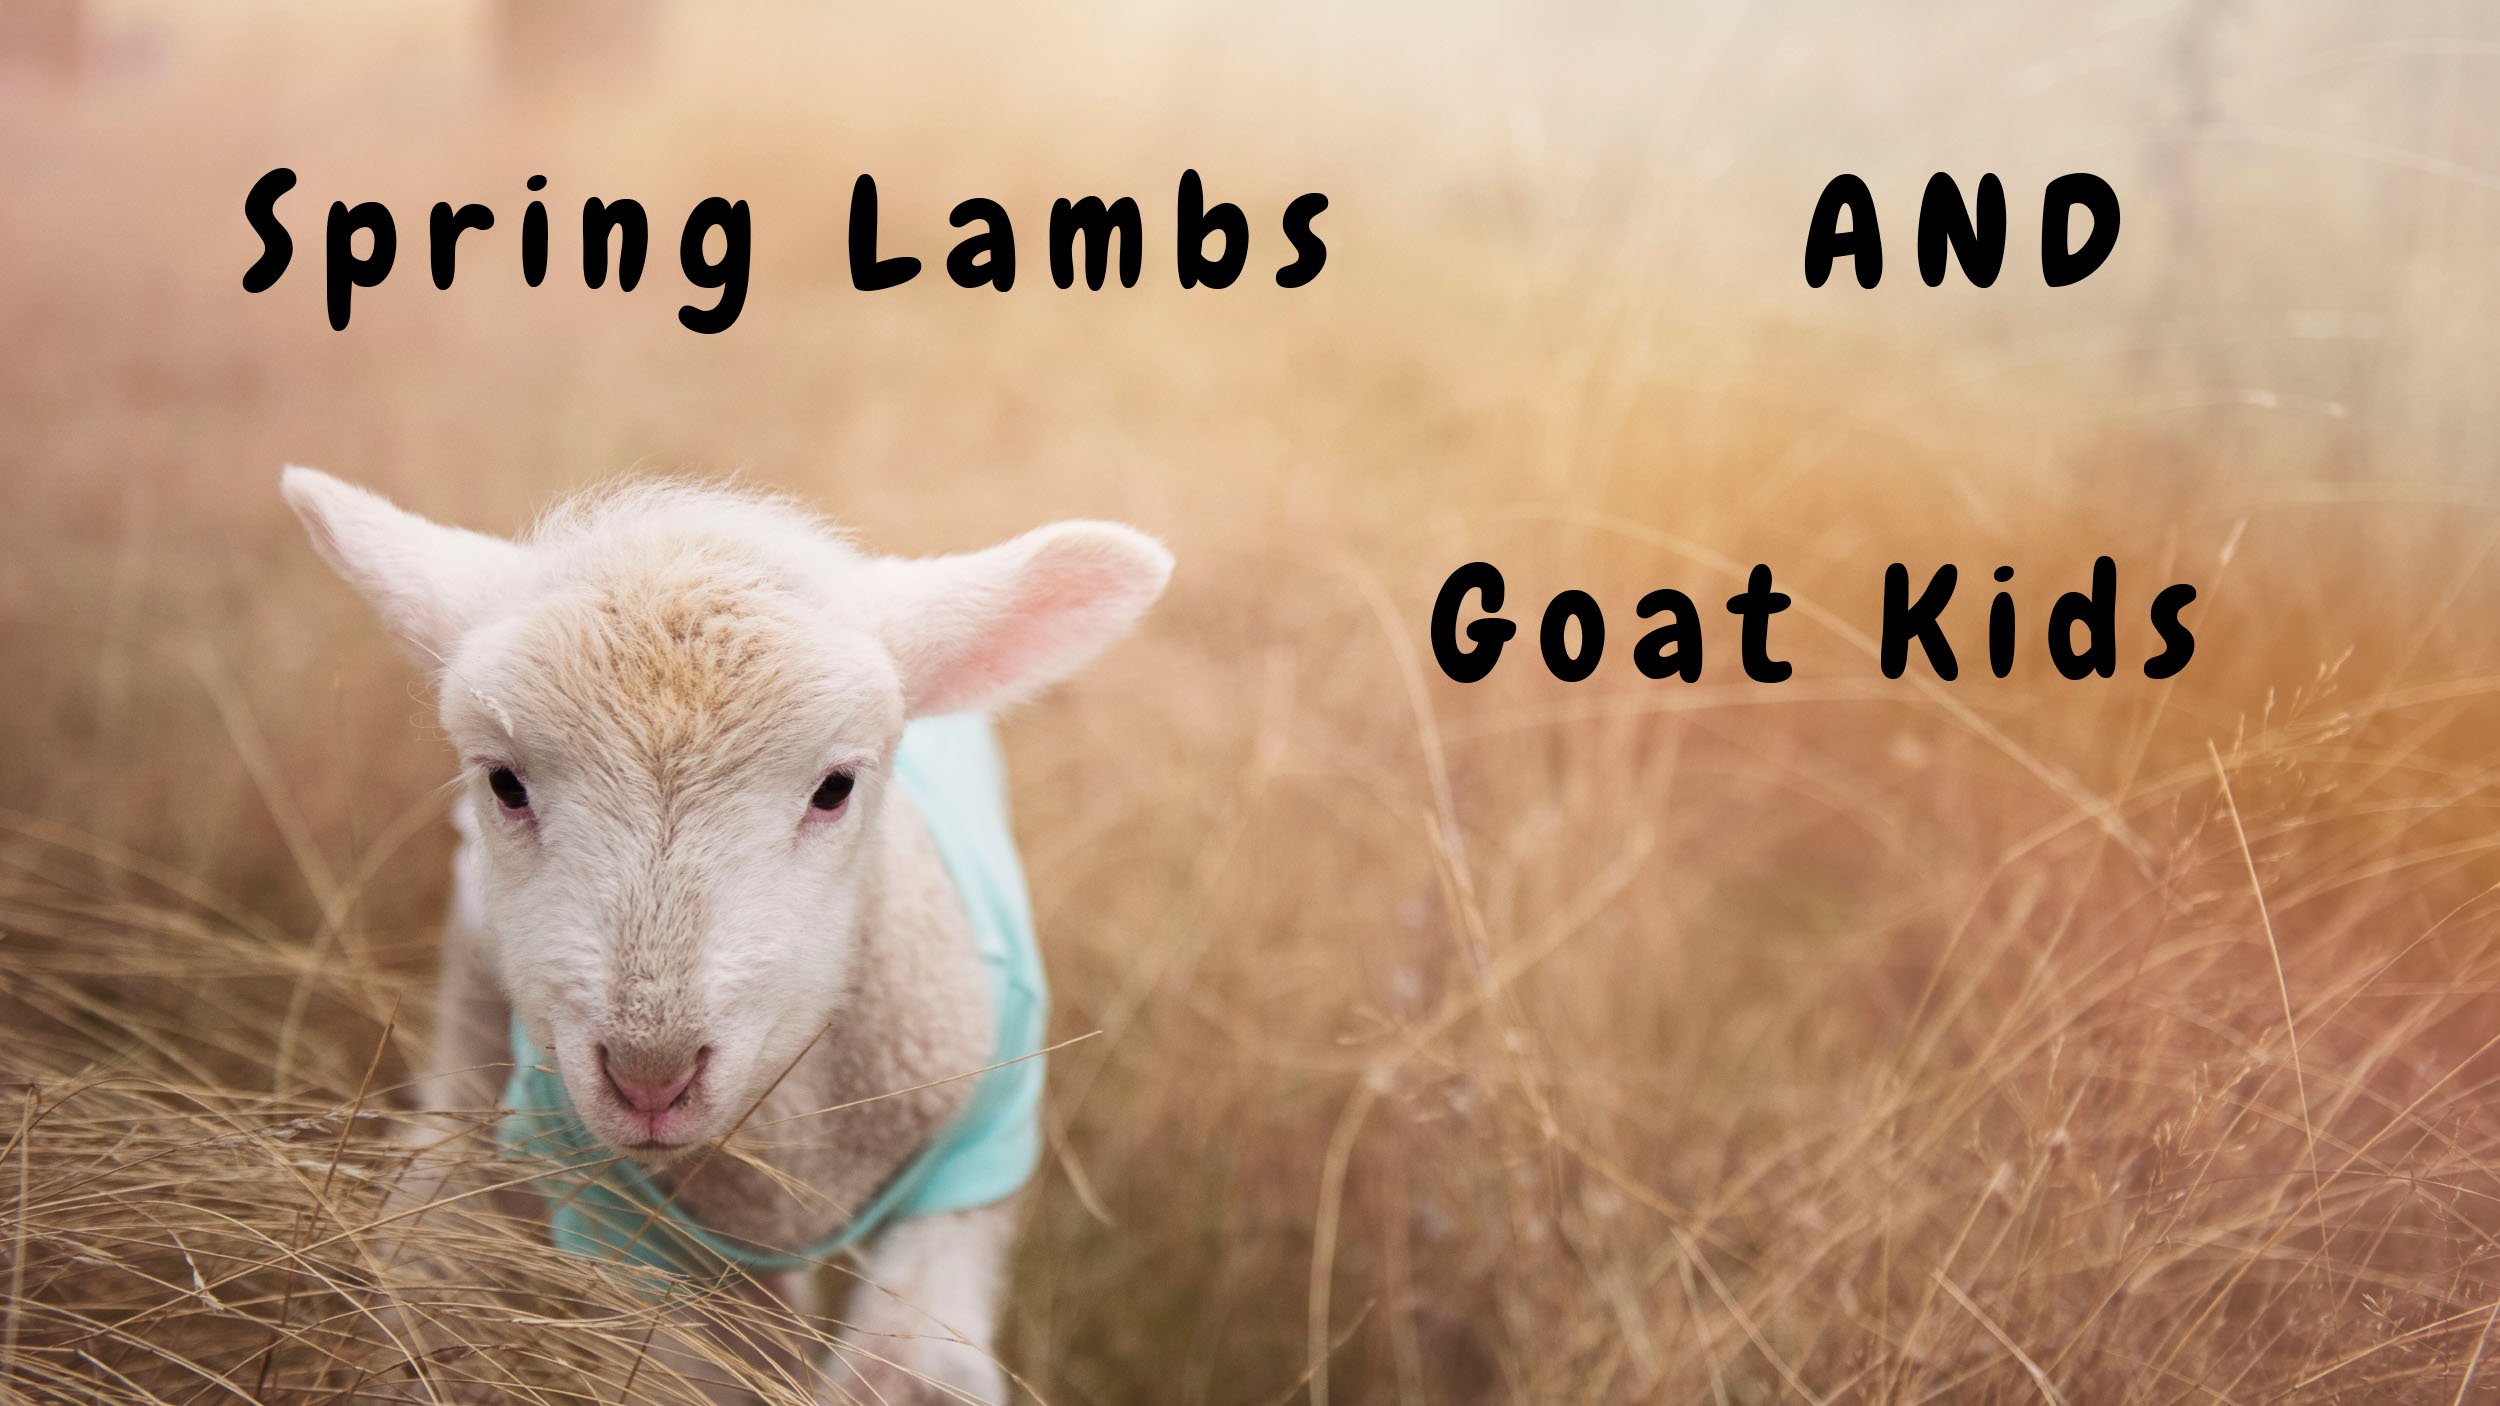 Spring Lambs and Goat Kids